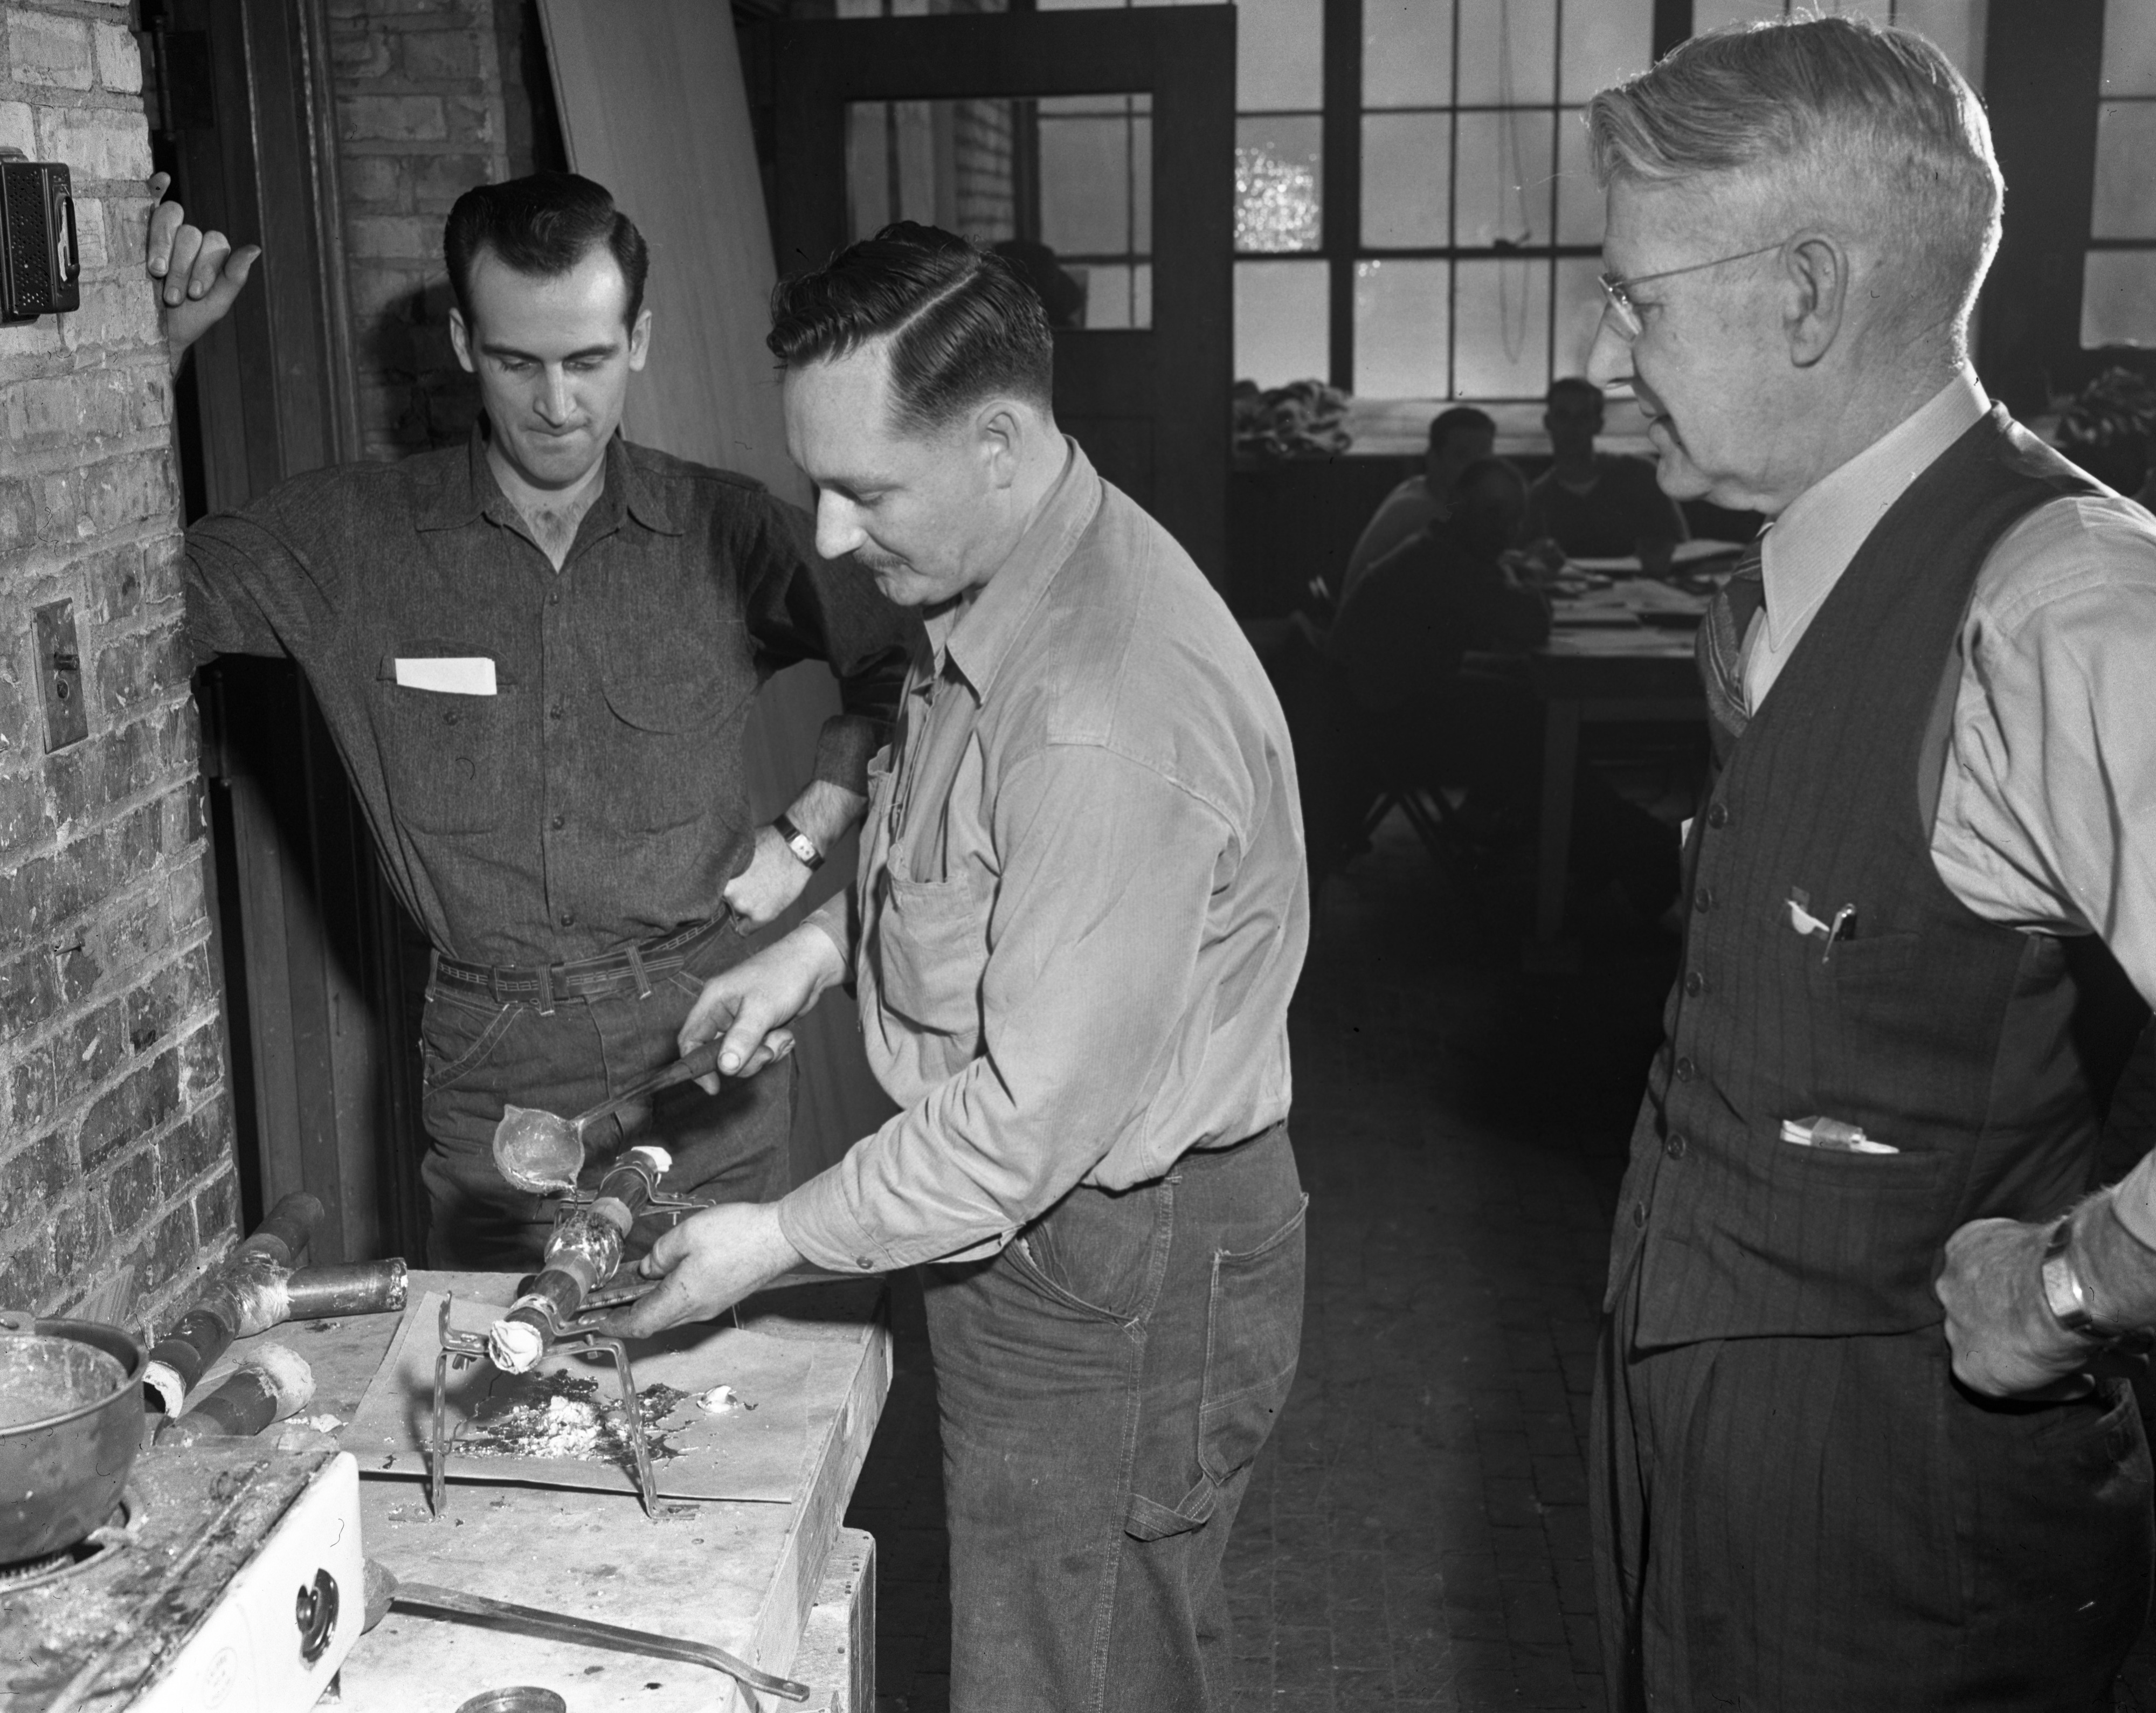 Veterans take a class in plumbing at Angell School, March 1948 image